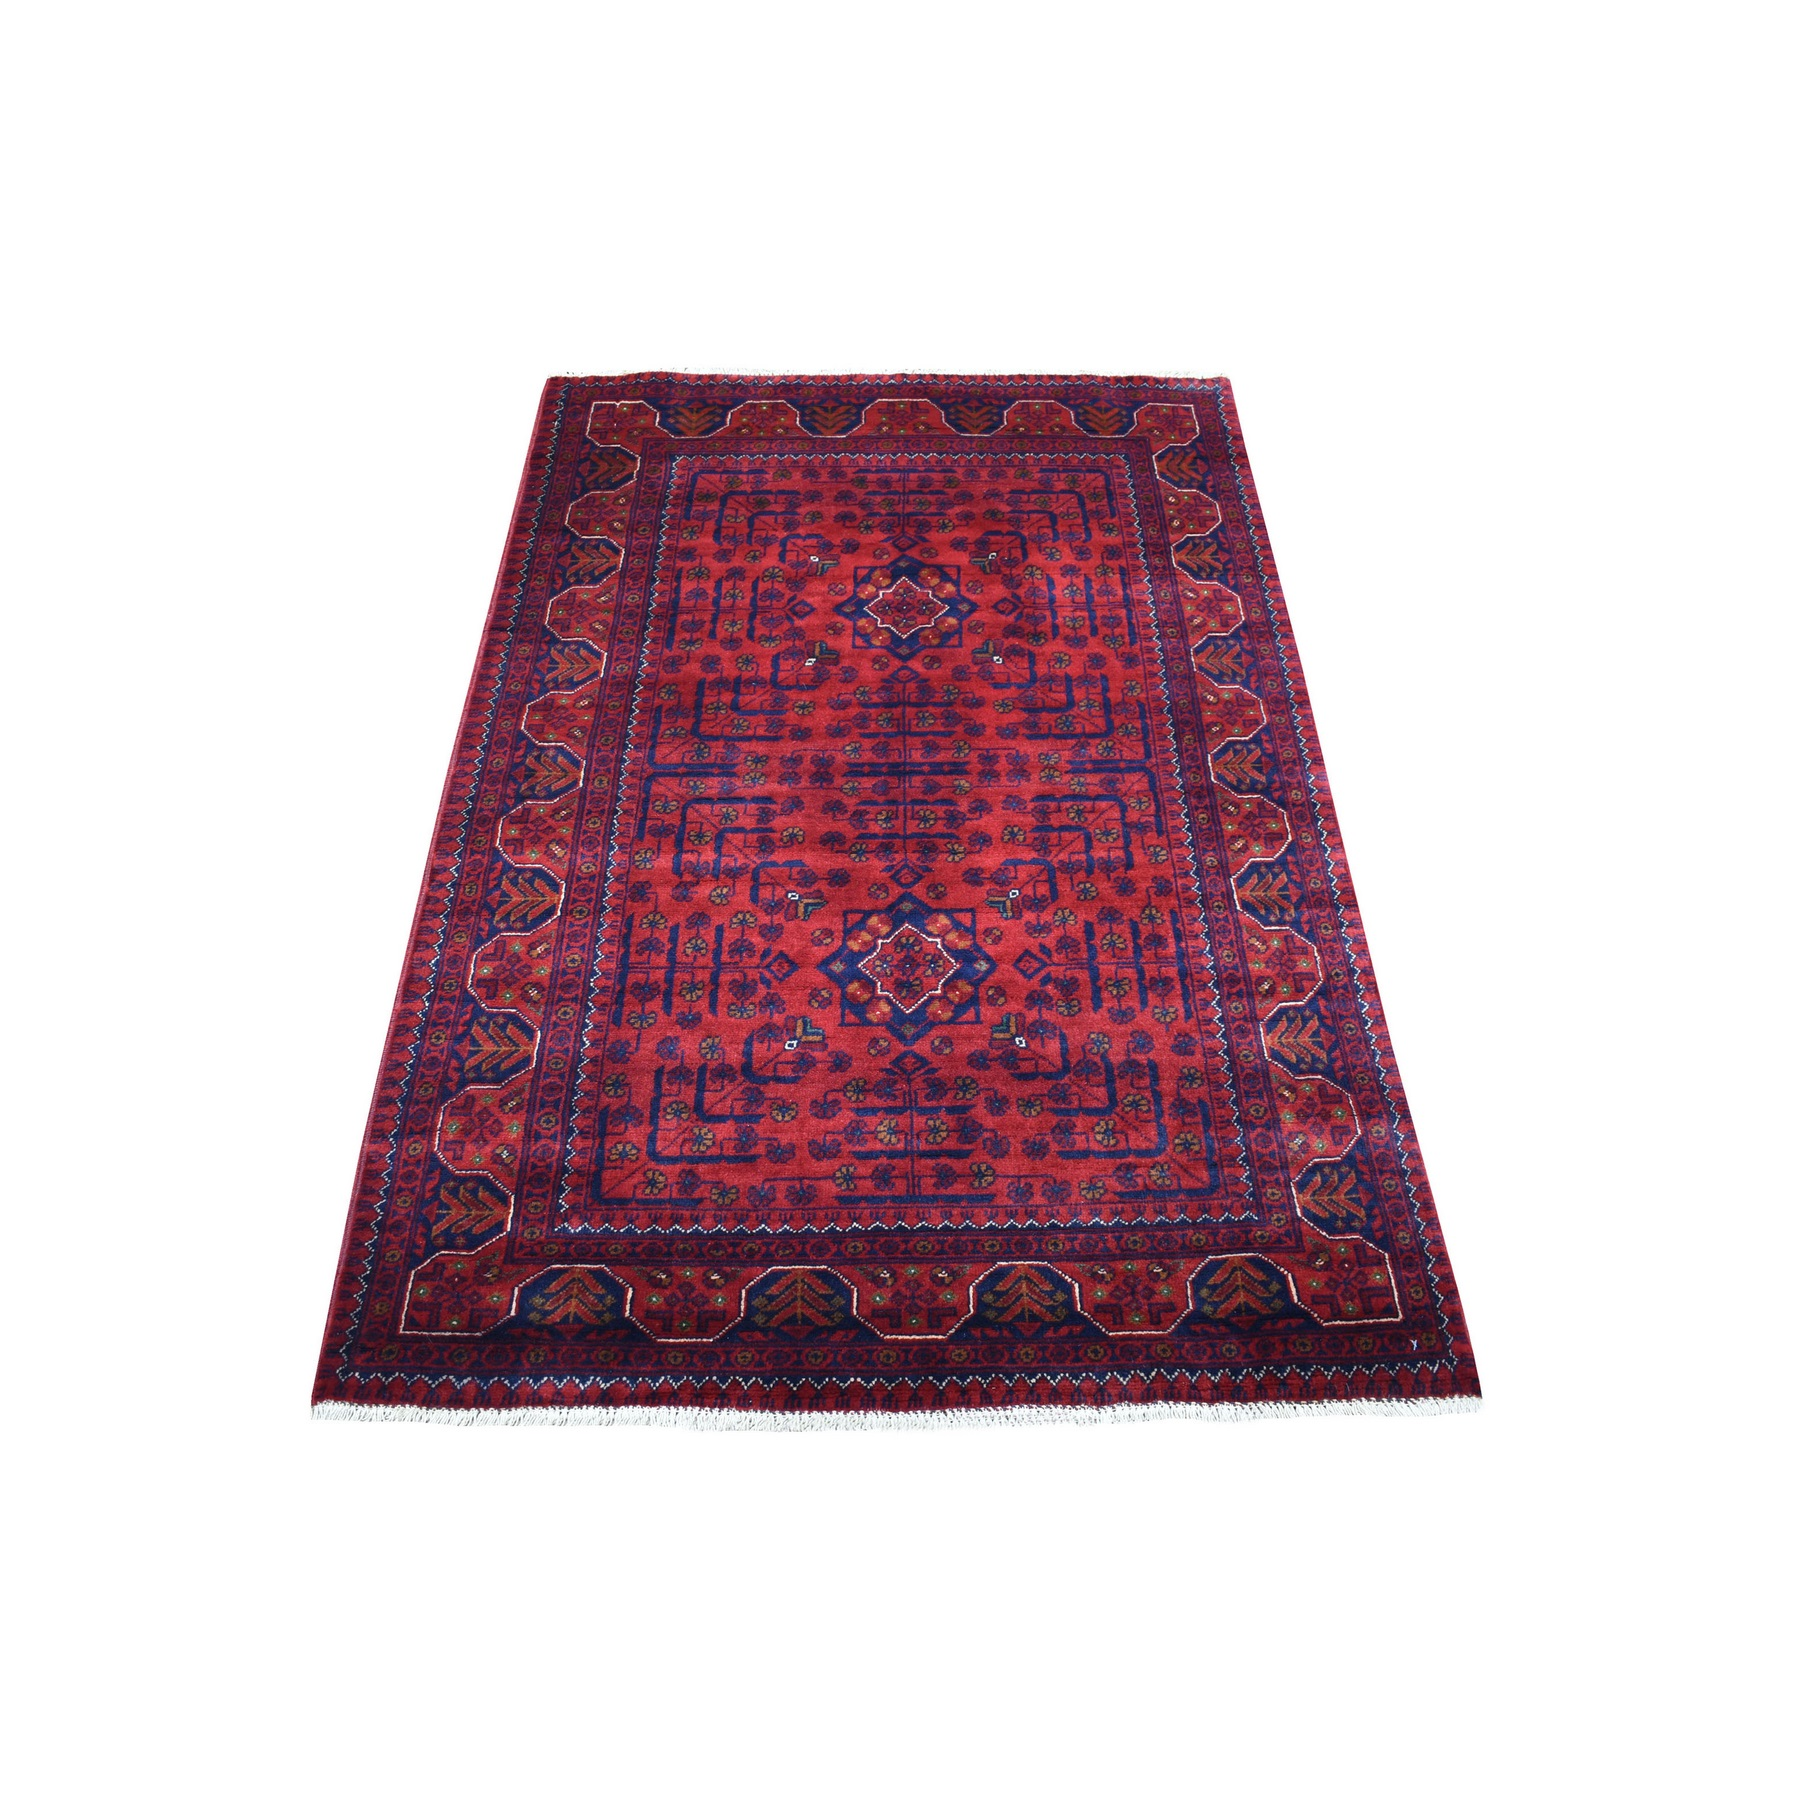 Nomadic And Village Collection Hand Knotted Red Rug No: 1136184